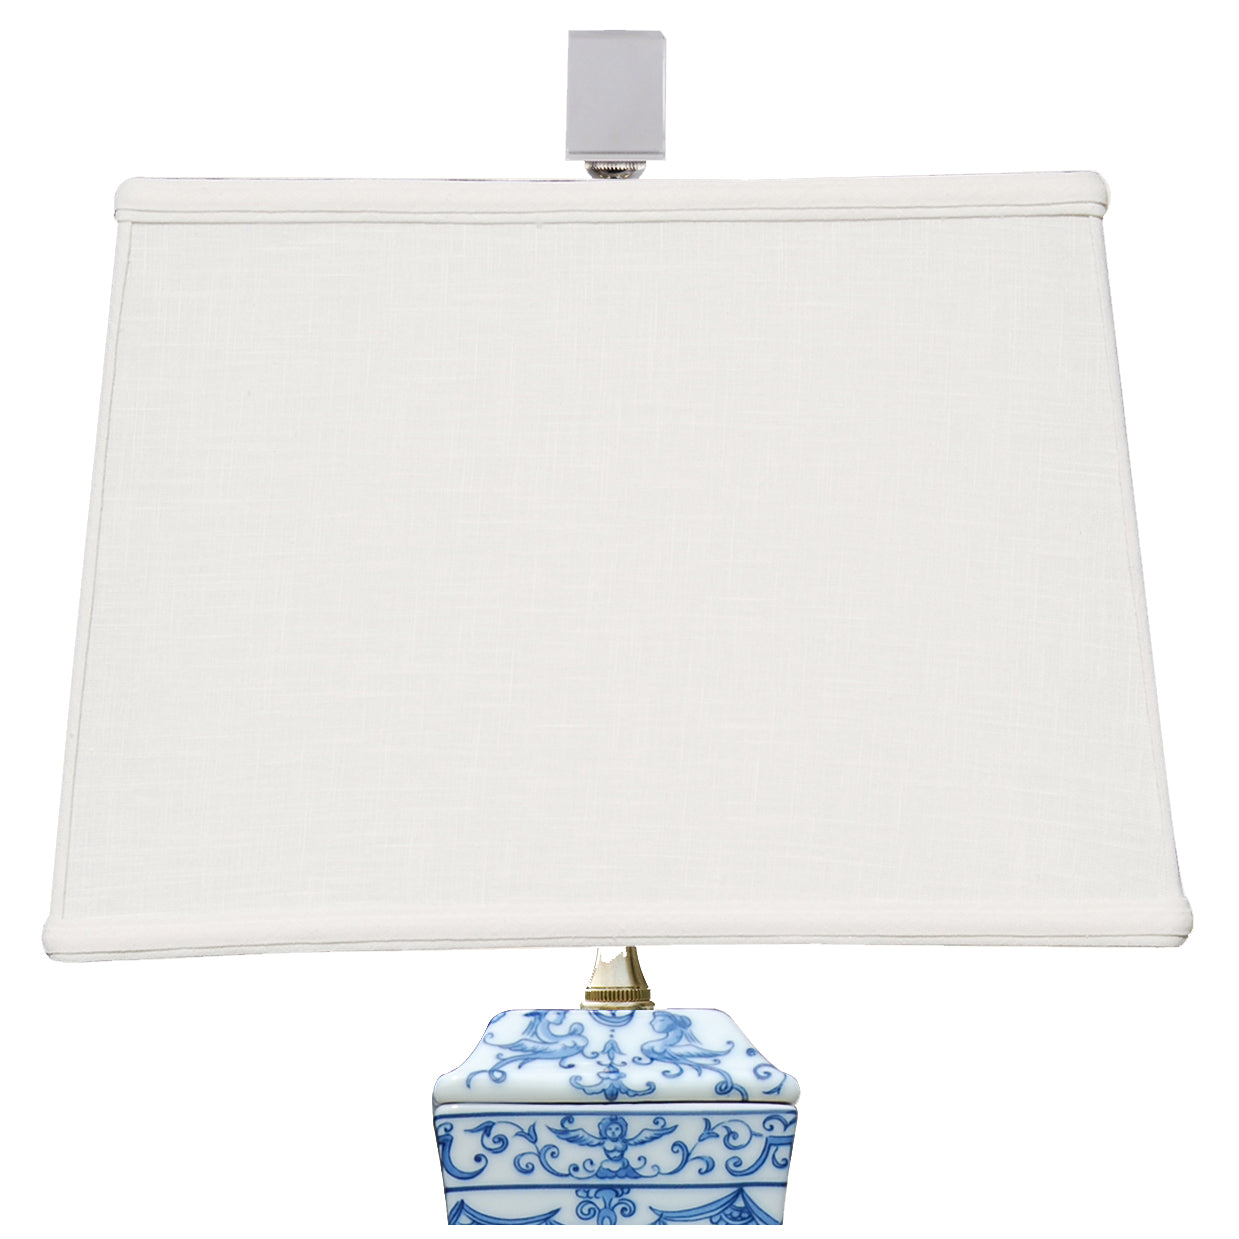 Blue & White Porcelain Table Lamp with Crystal Base